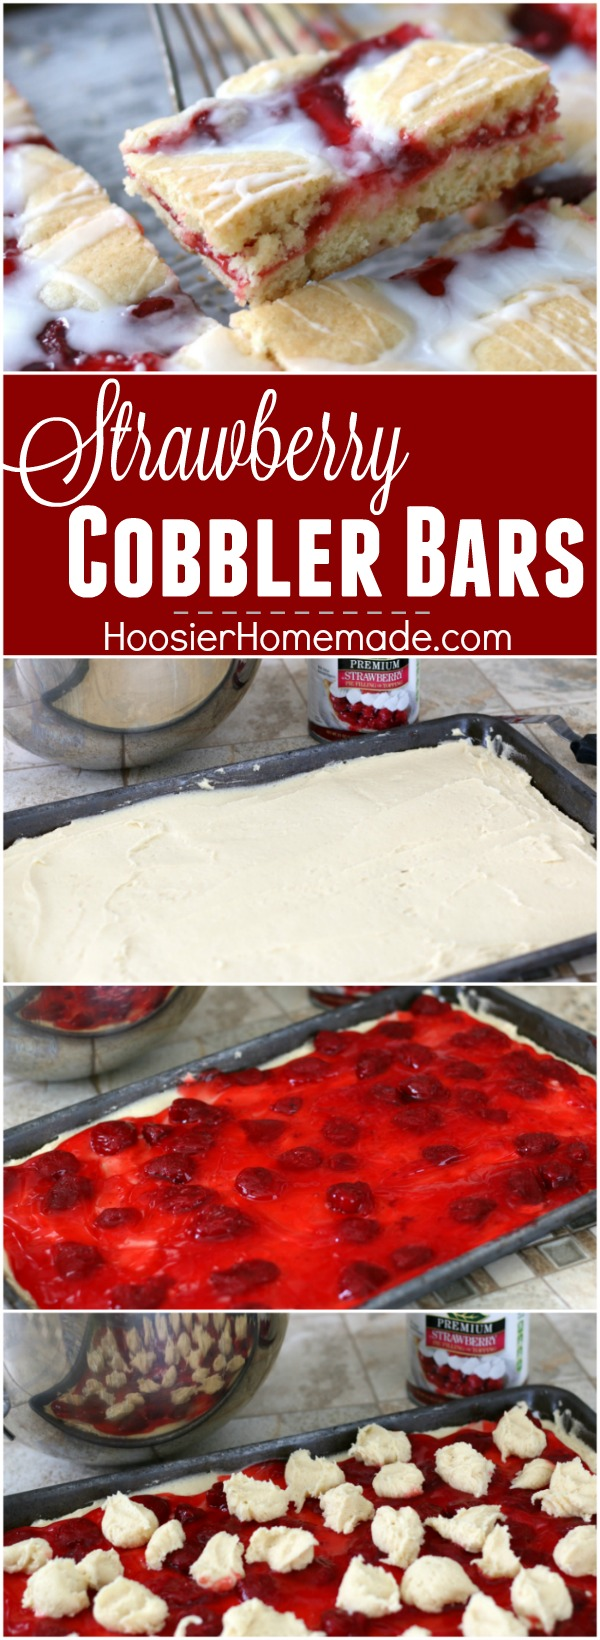 These Strawberry Cobbler Bars will knock your socks OFF! They are super simple to make and taste amazing! Serve them for any occasion, take them to a potluck or easy enough for a weeknight dessert!